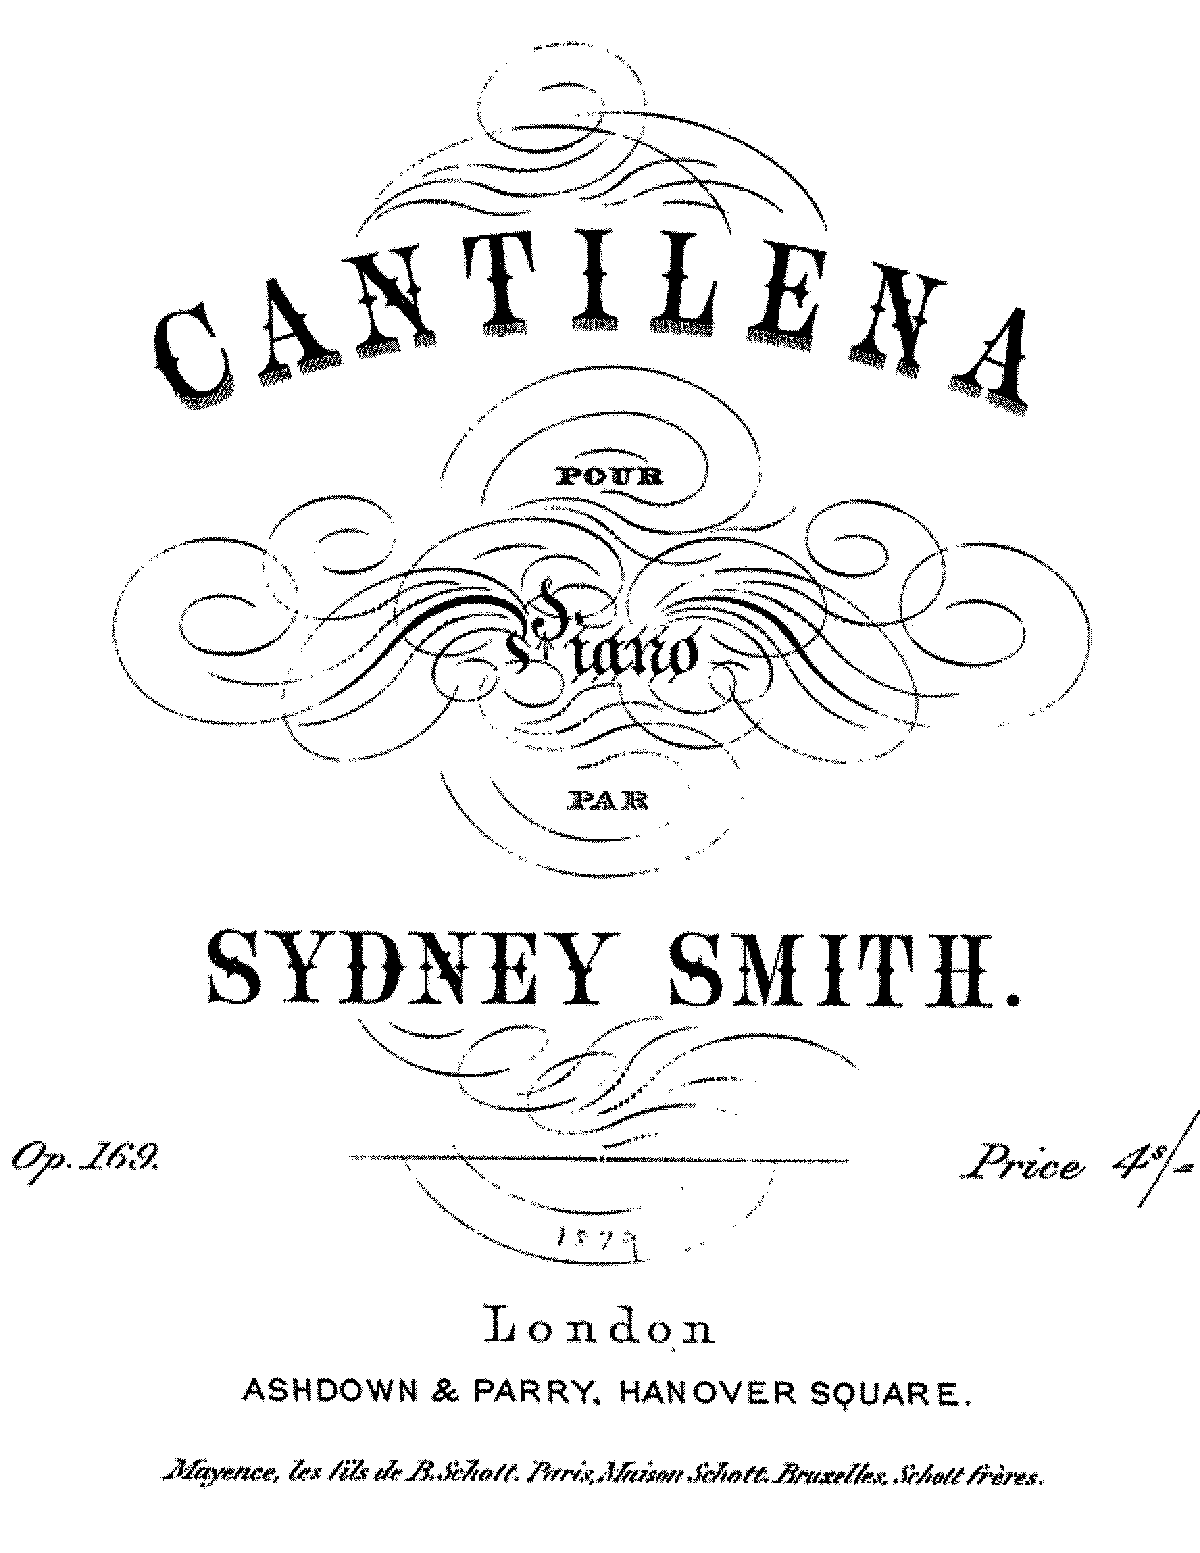 Smith, Sydney op169 cantilena.pdf